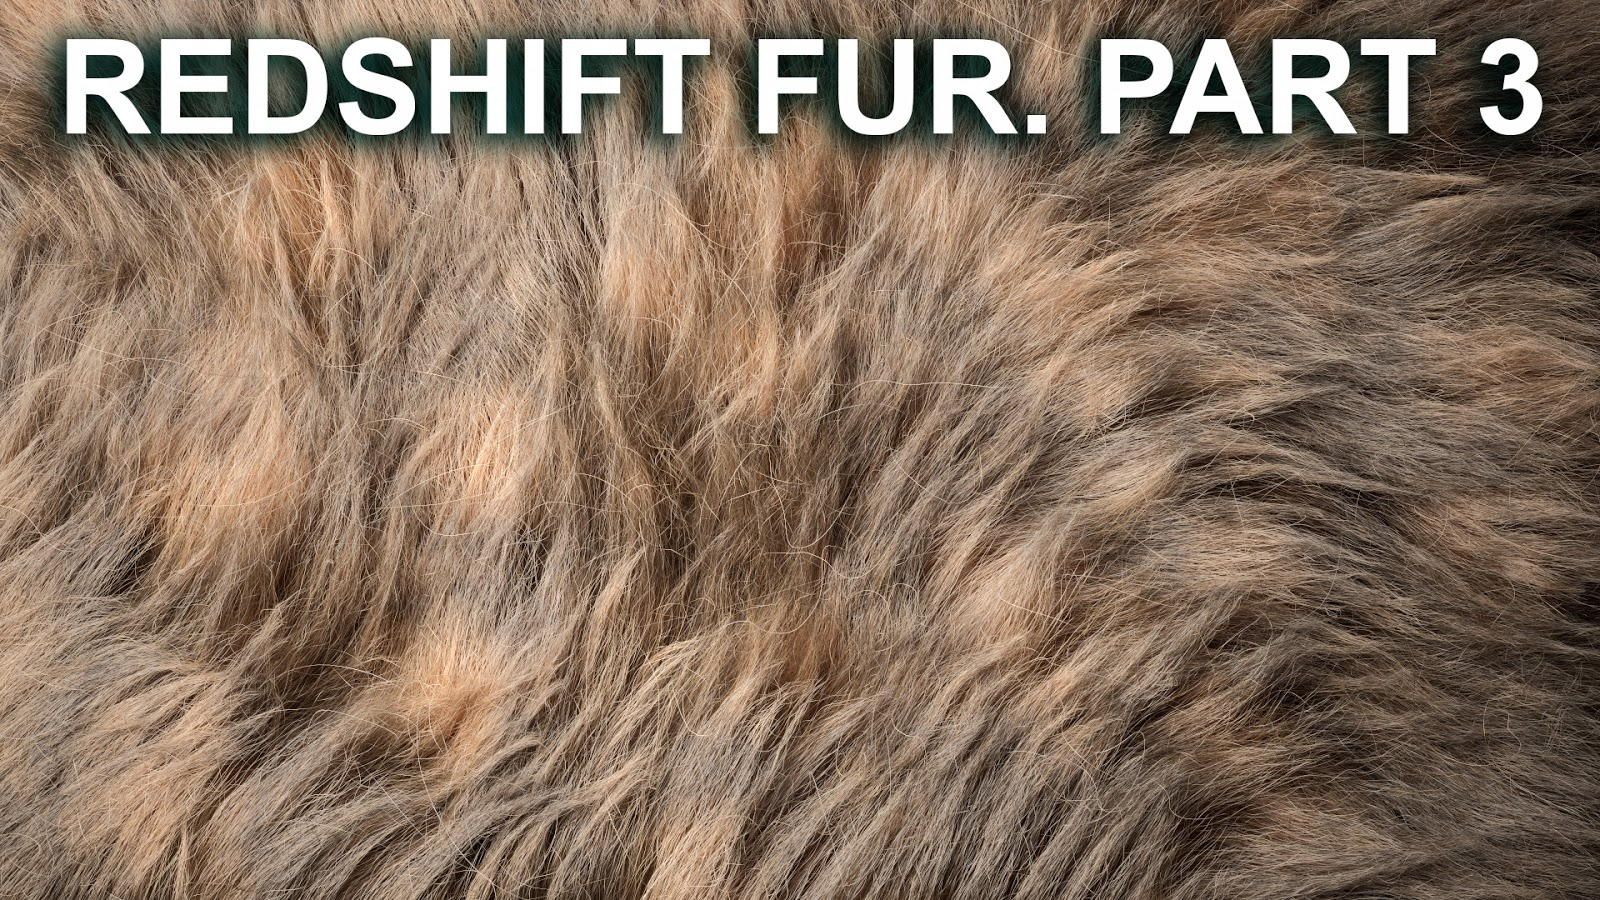 redshift_fur_part3_preview.jpg